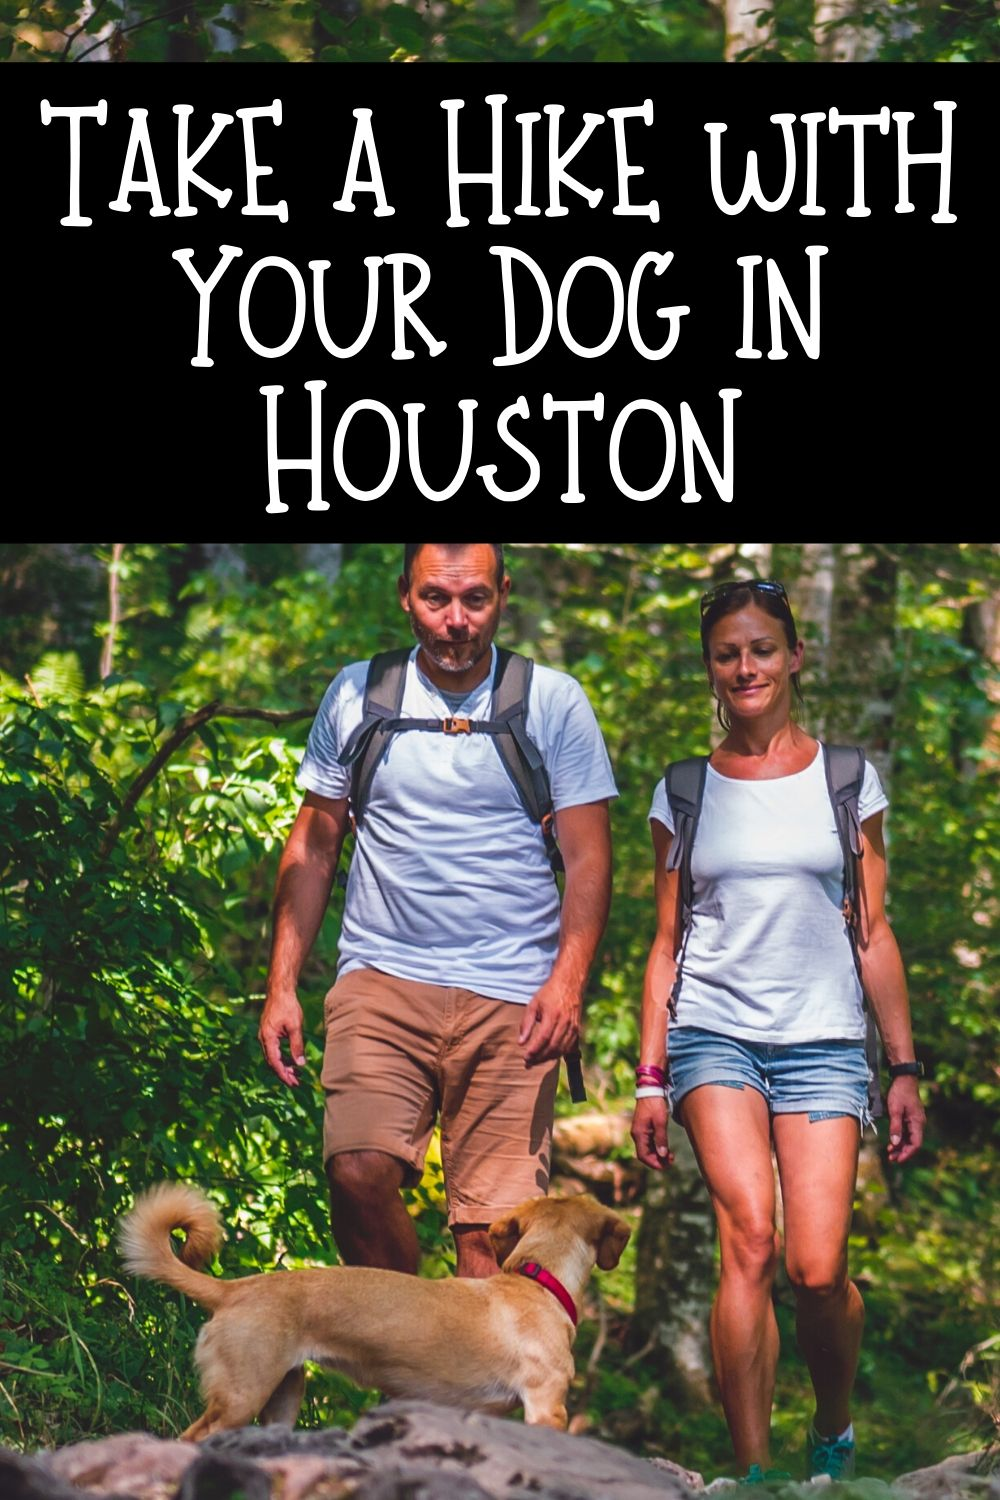 Are you looking for a reason to get out and enjoy the beautiful weather here in Houston? These Houston hiking spots you can visit with your dog will do the trick!